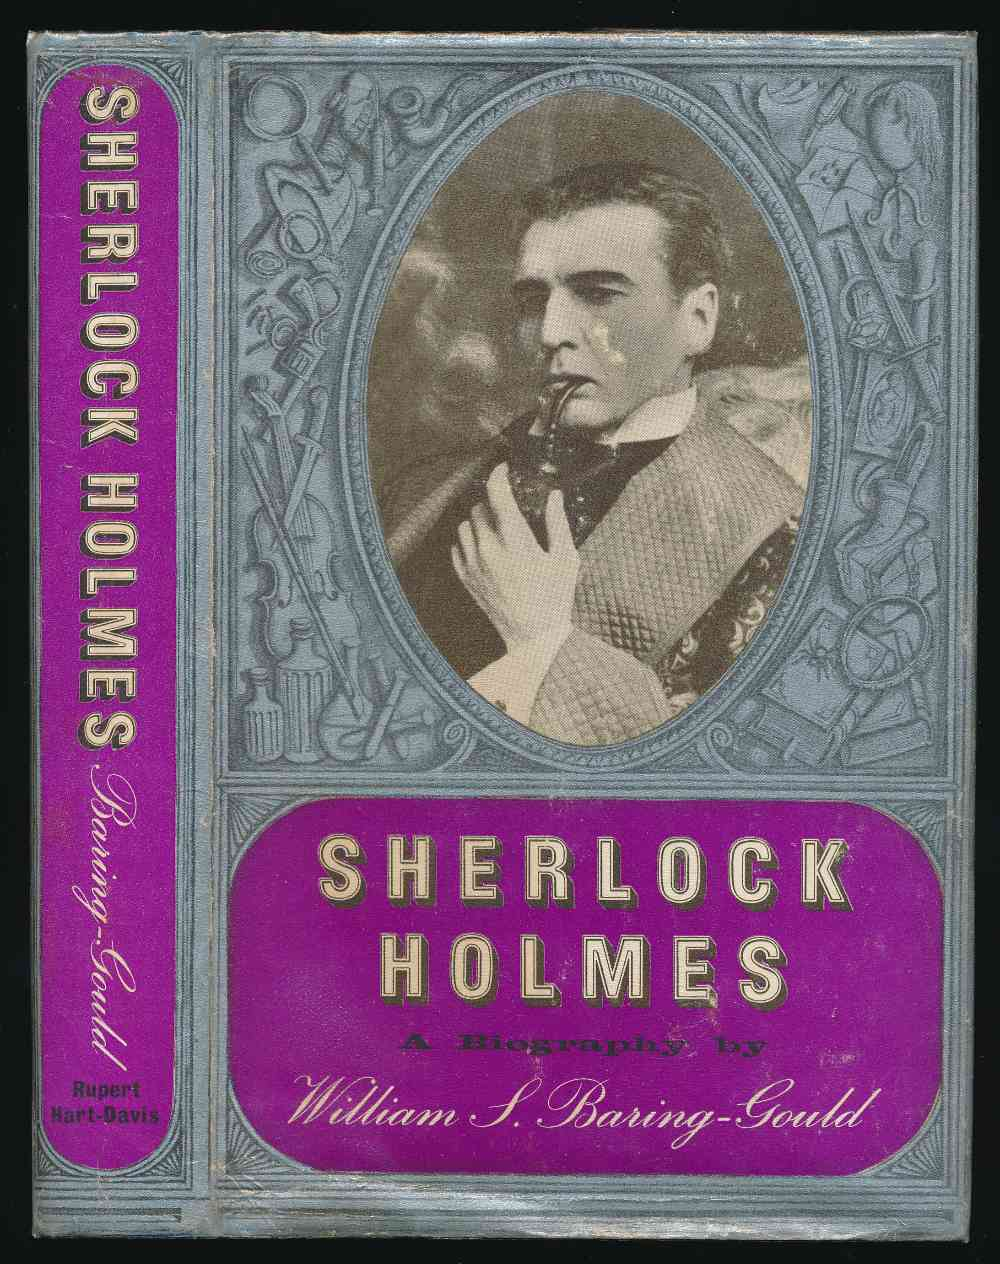 Sherlock Holmes : a biography of the world's first consulting detective